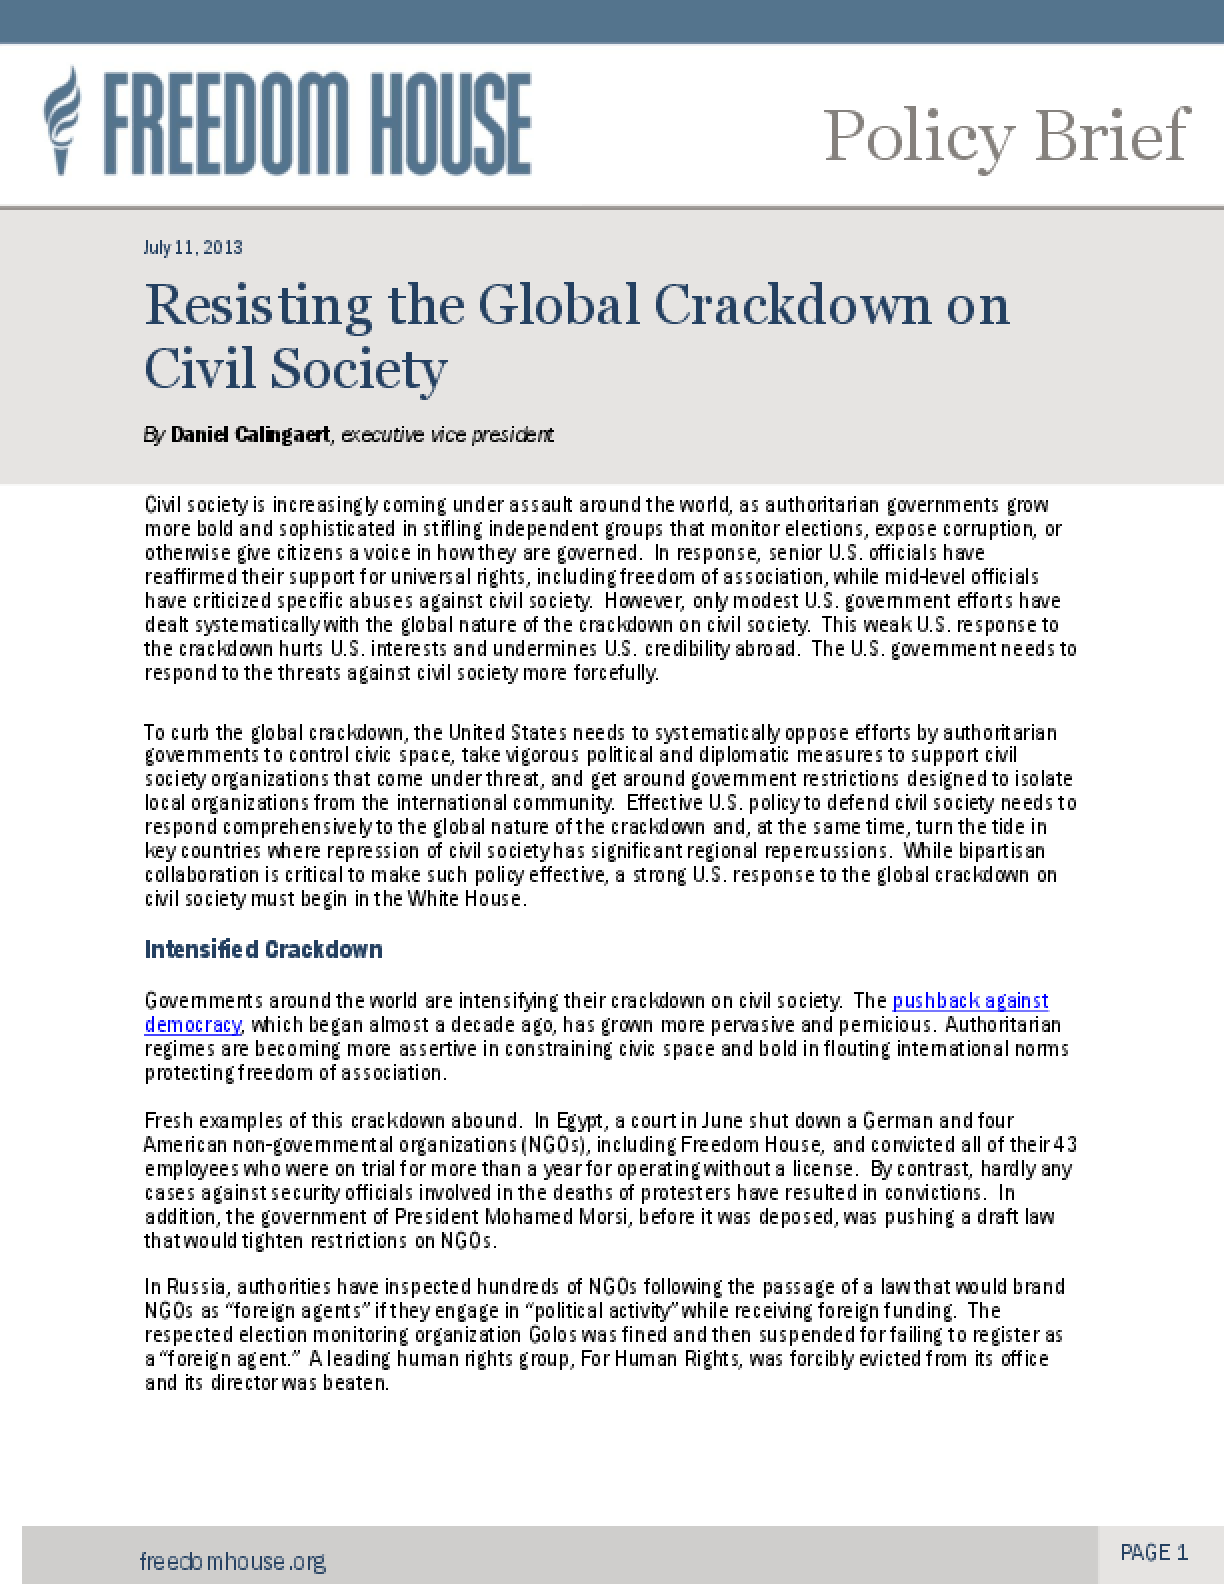 Resisting the Global Crackdown on Civil Society